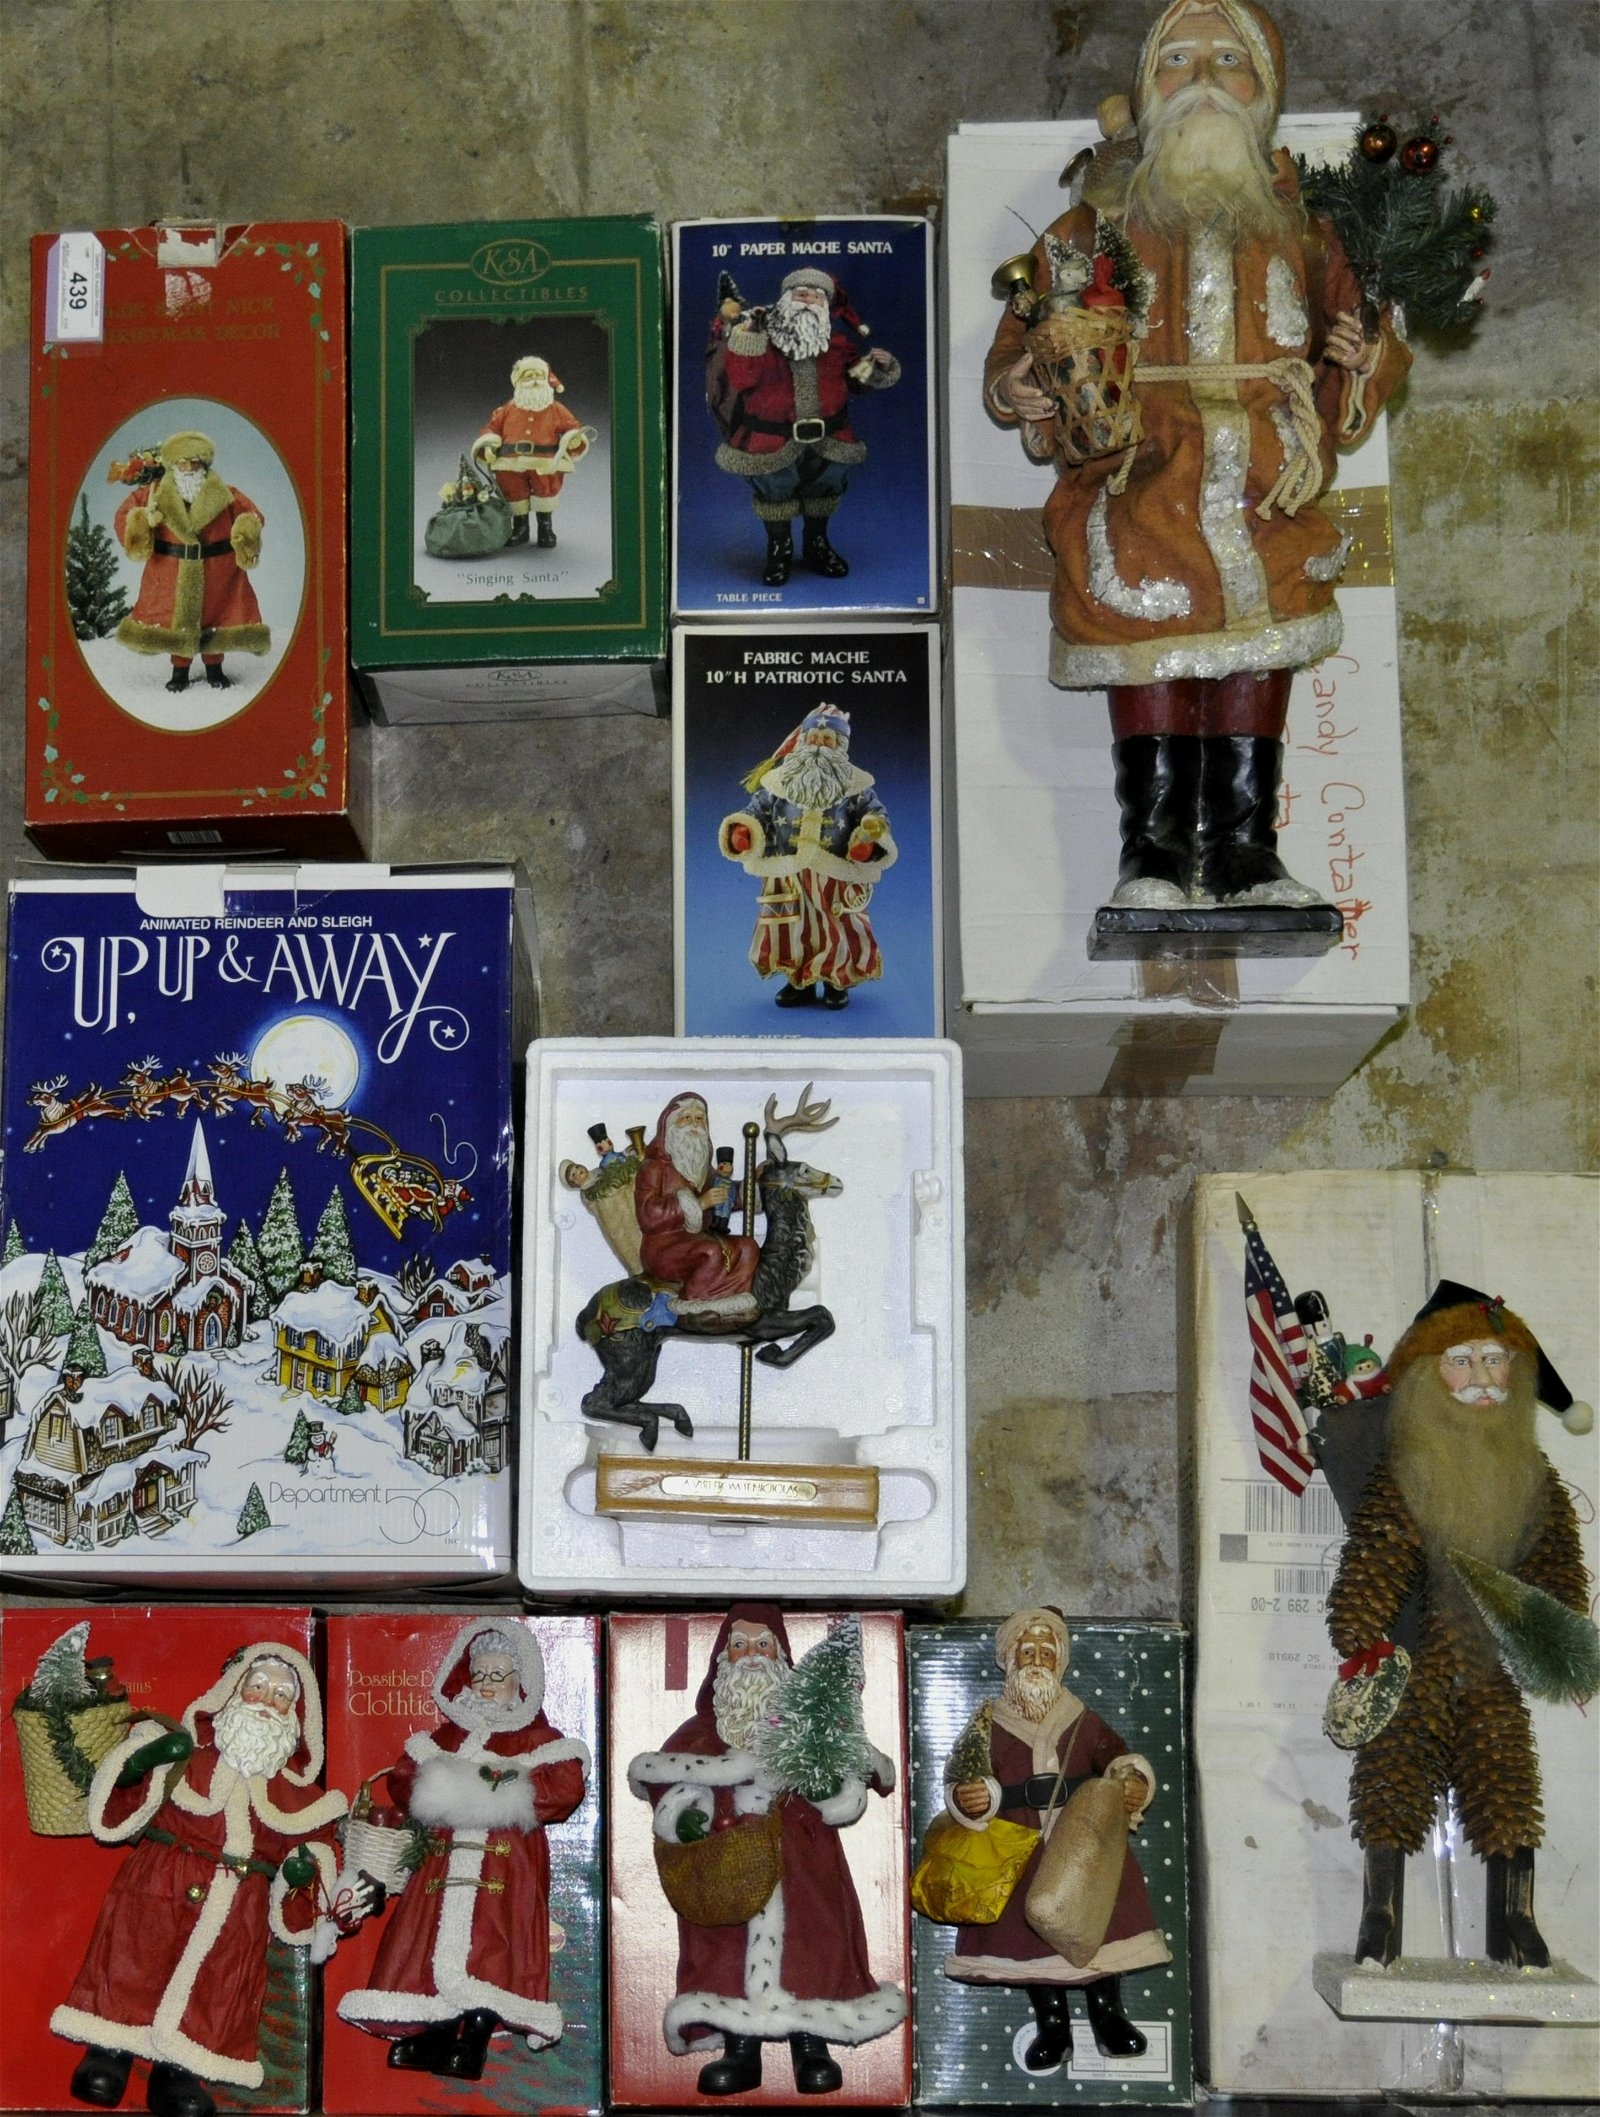 Miscellaneous Christmas Accessories & Ornaments